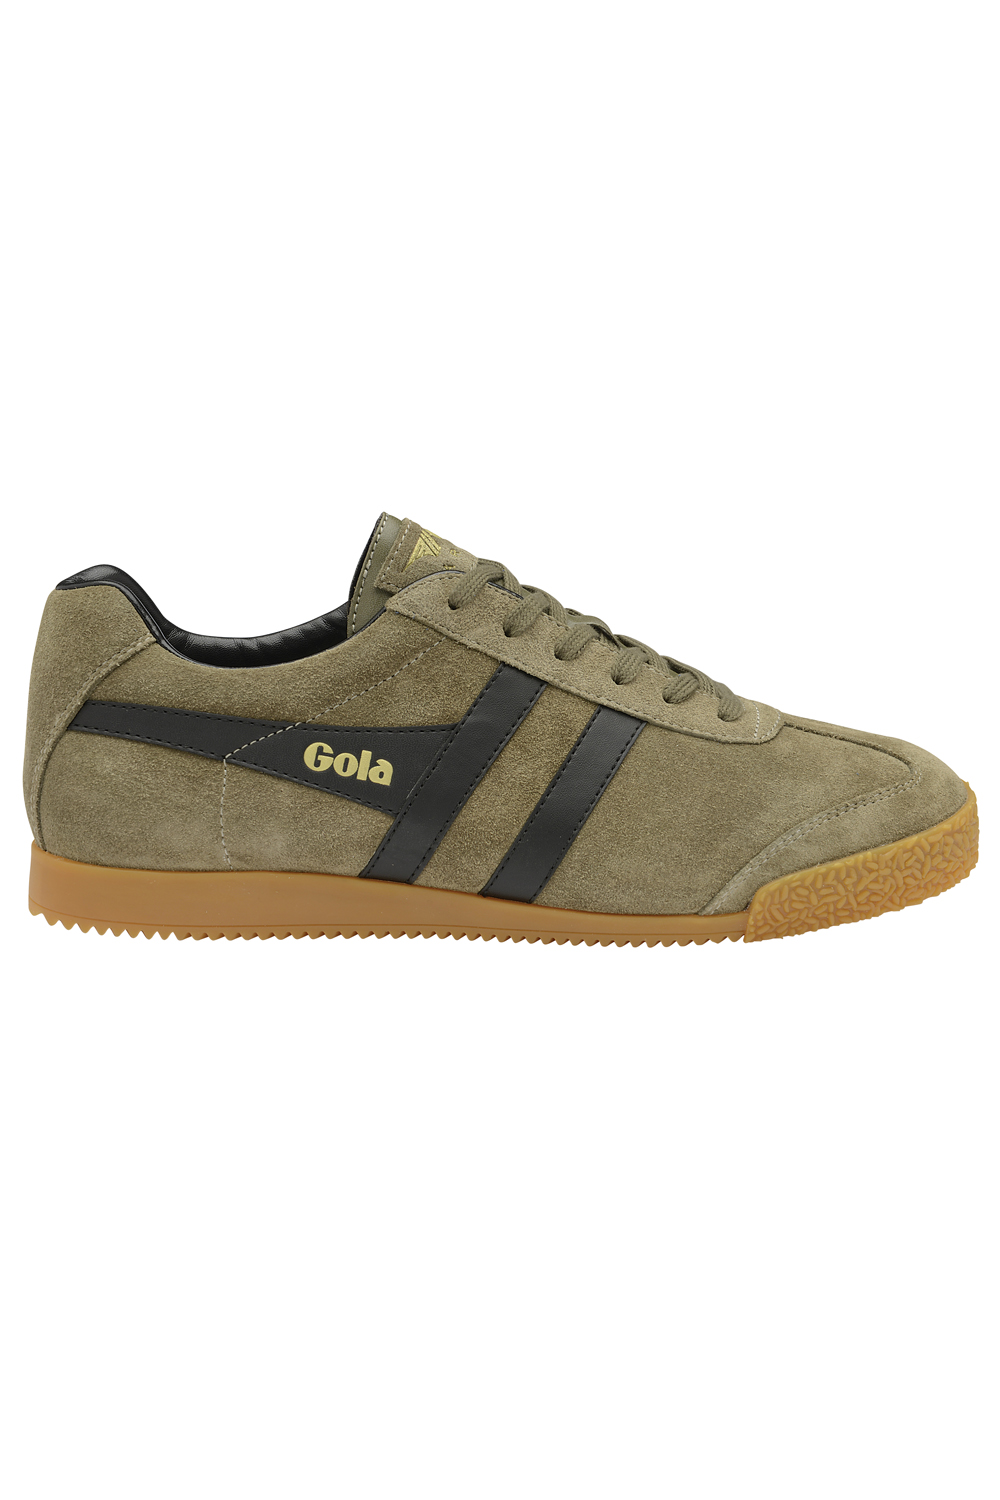 thumbnail 7 - Gola Harrier Suede Classic Vintage Lace-Up Sneakers Mens Trainers Low Top Shoes